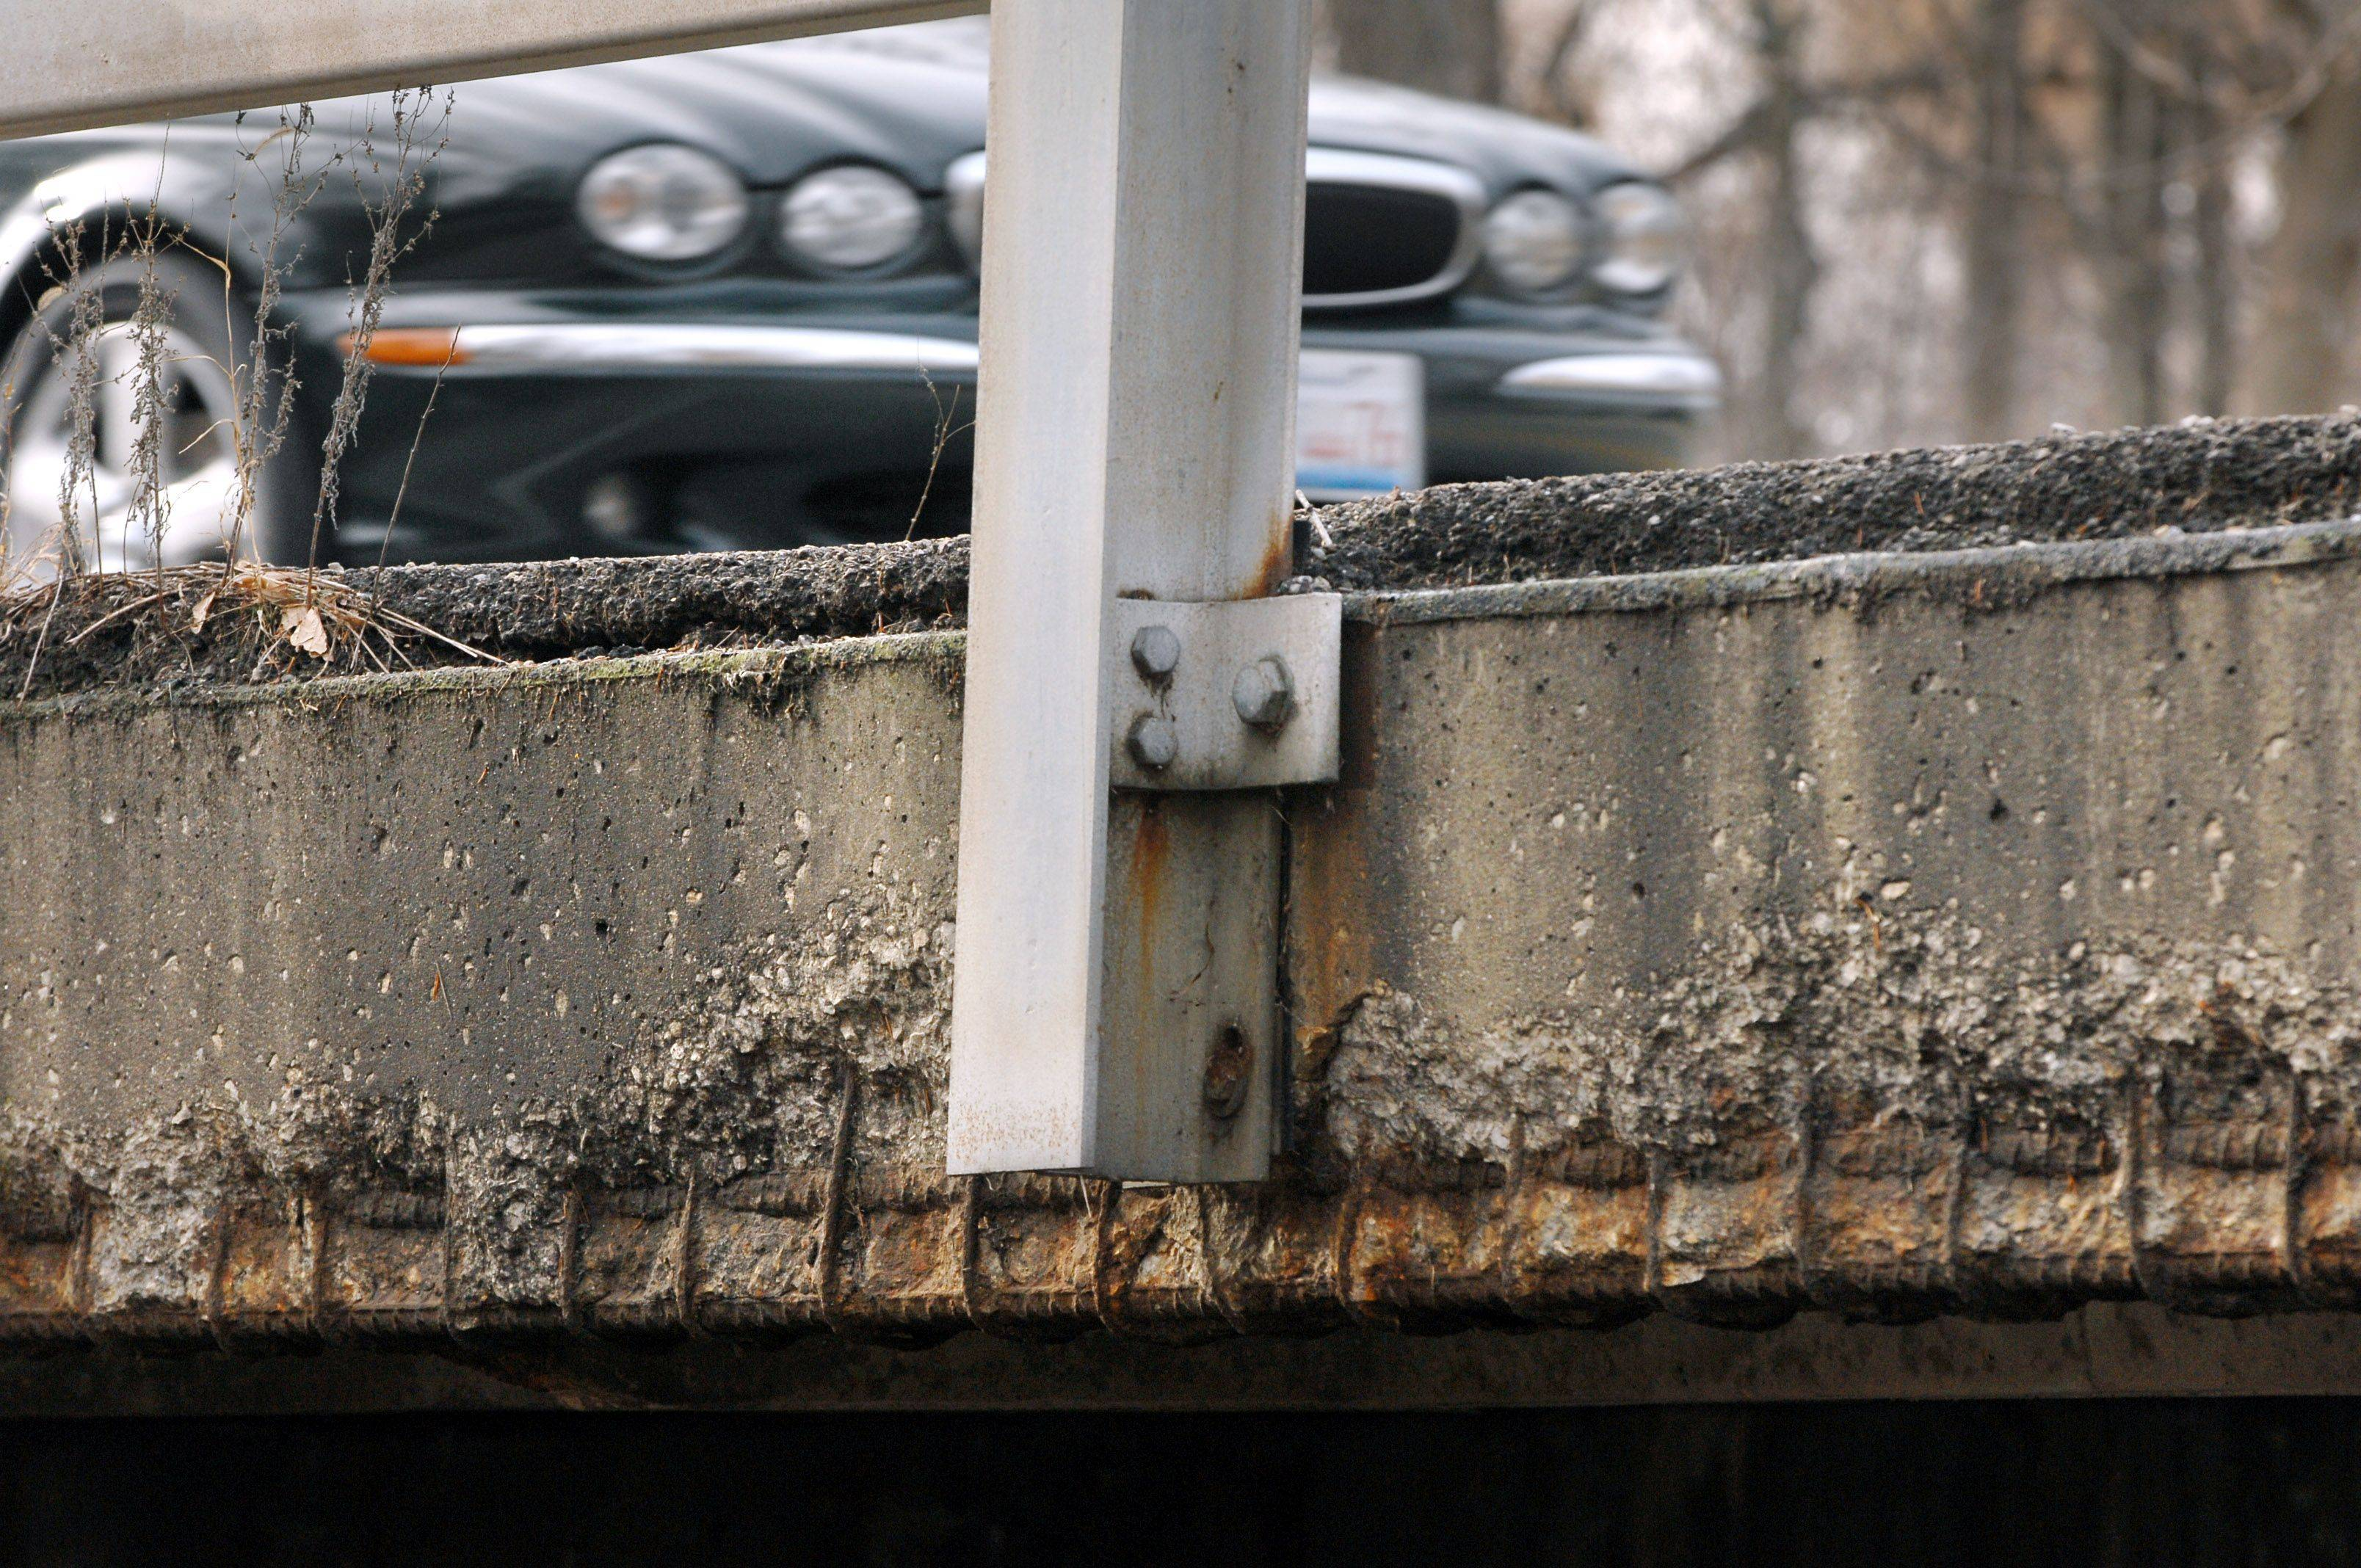 1 in 13 local bridges 'structurally deficient'